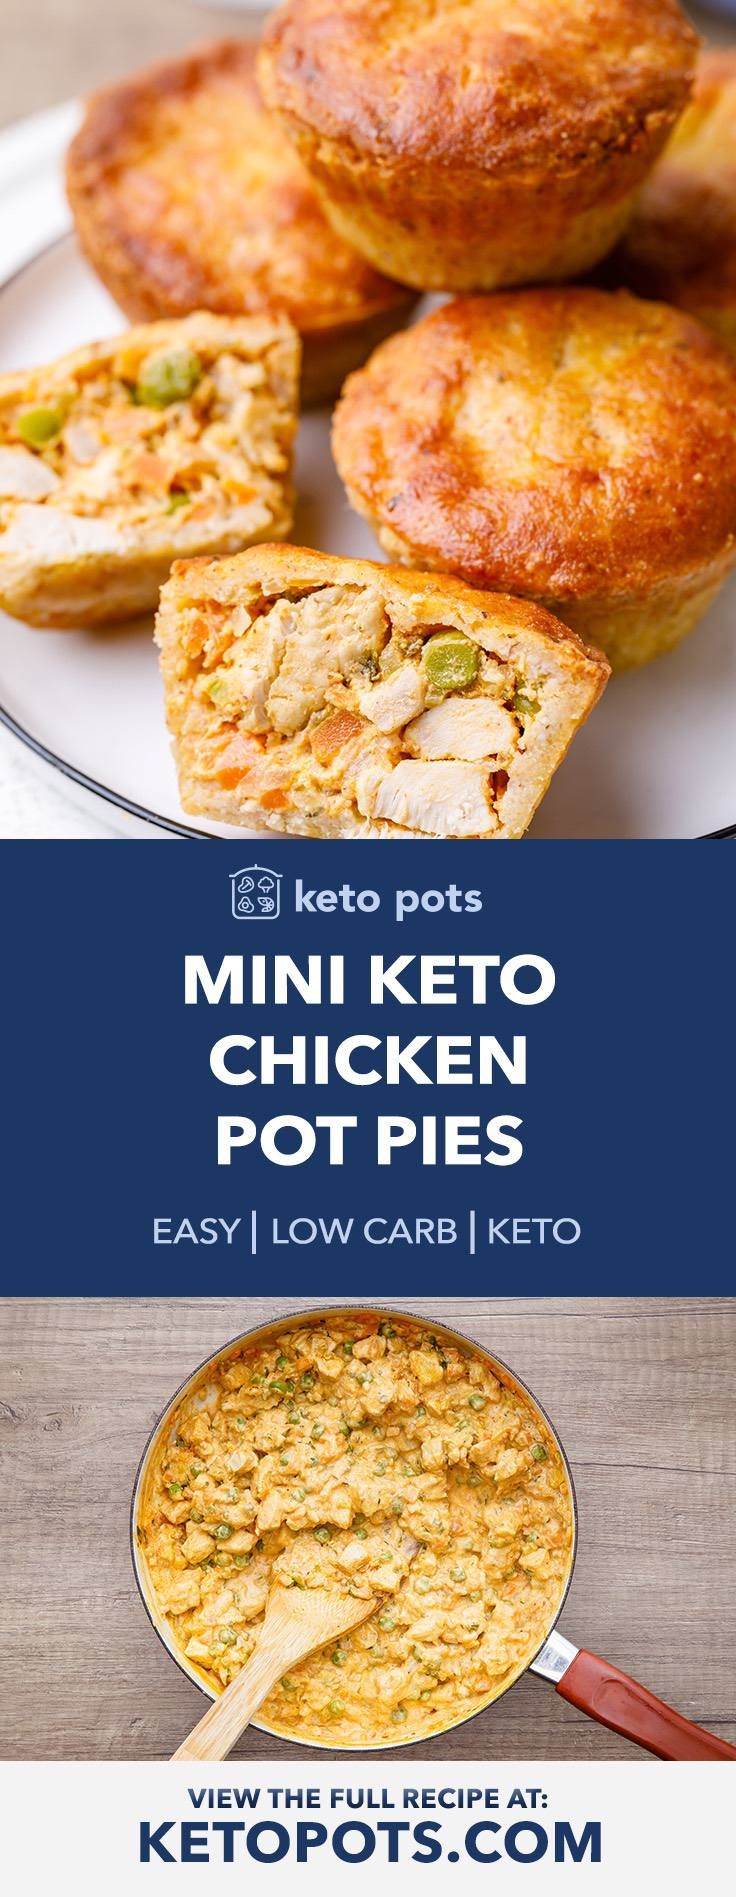 Mini Keto Chicken Pot Pies